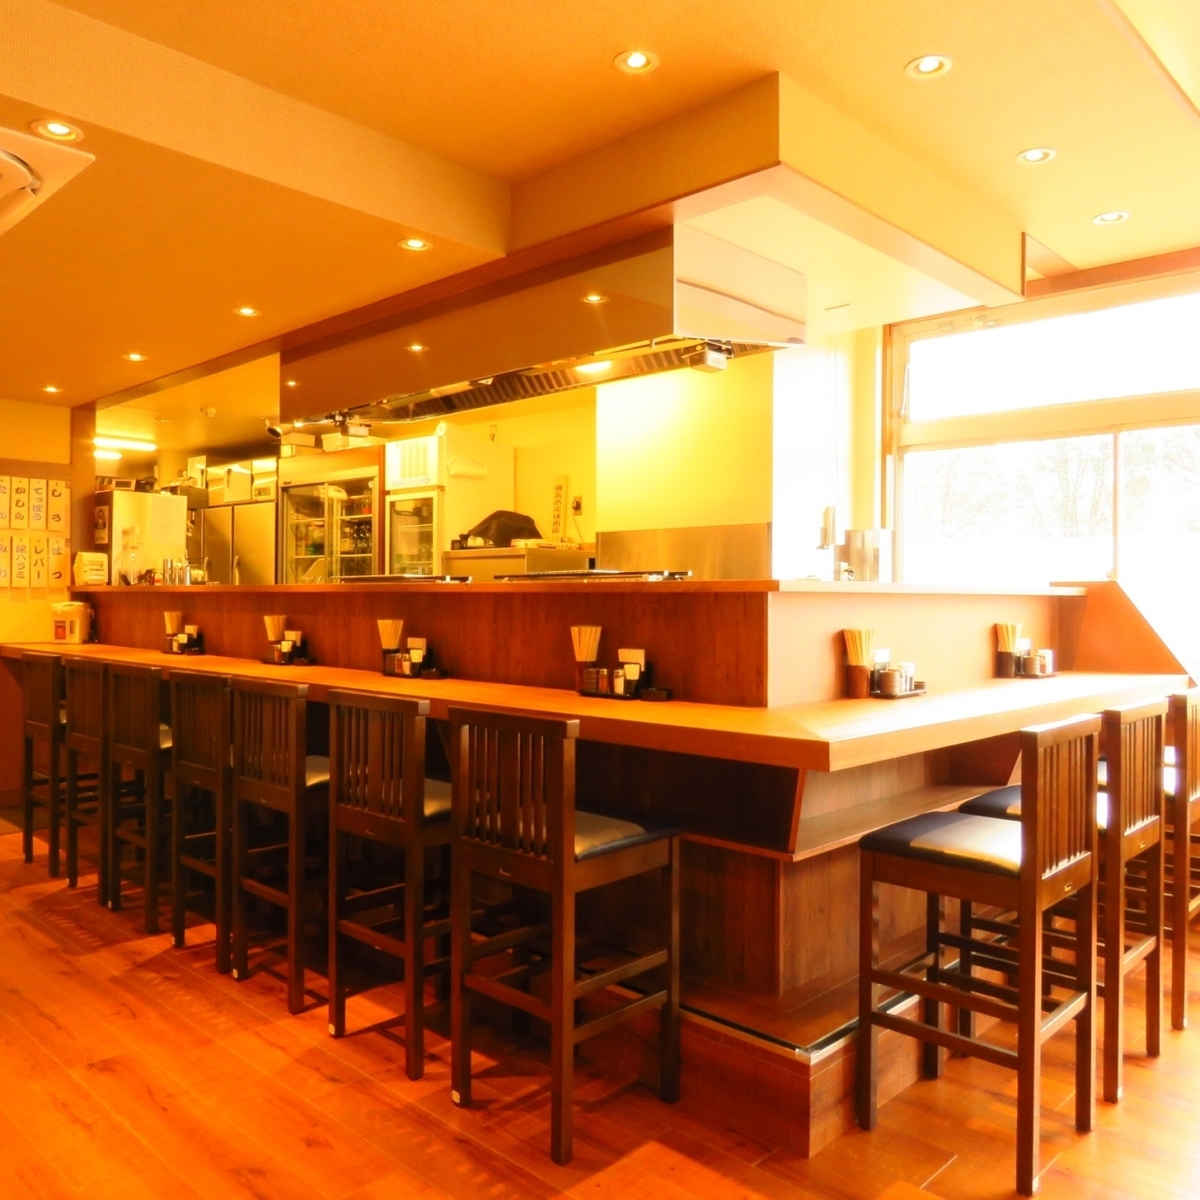 Counter seats are recommended if you use a small group of 1 to 2 people!